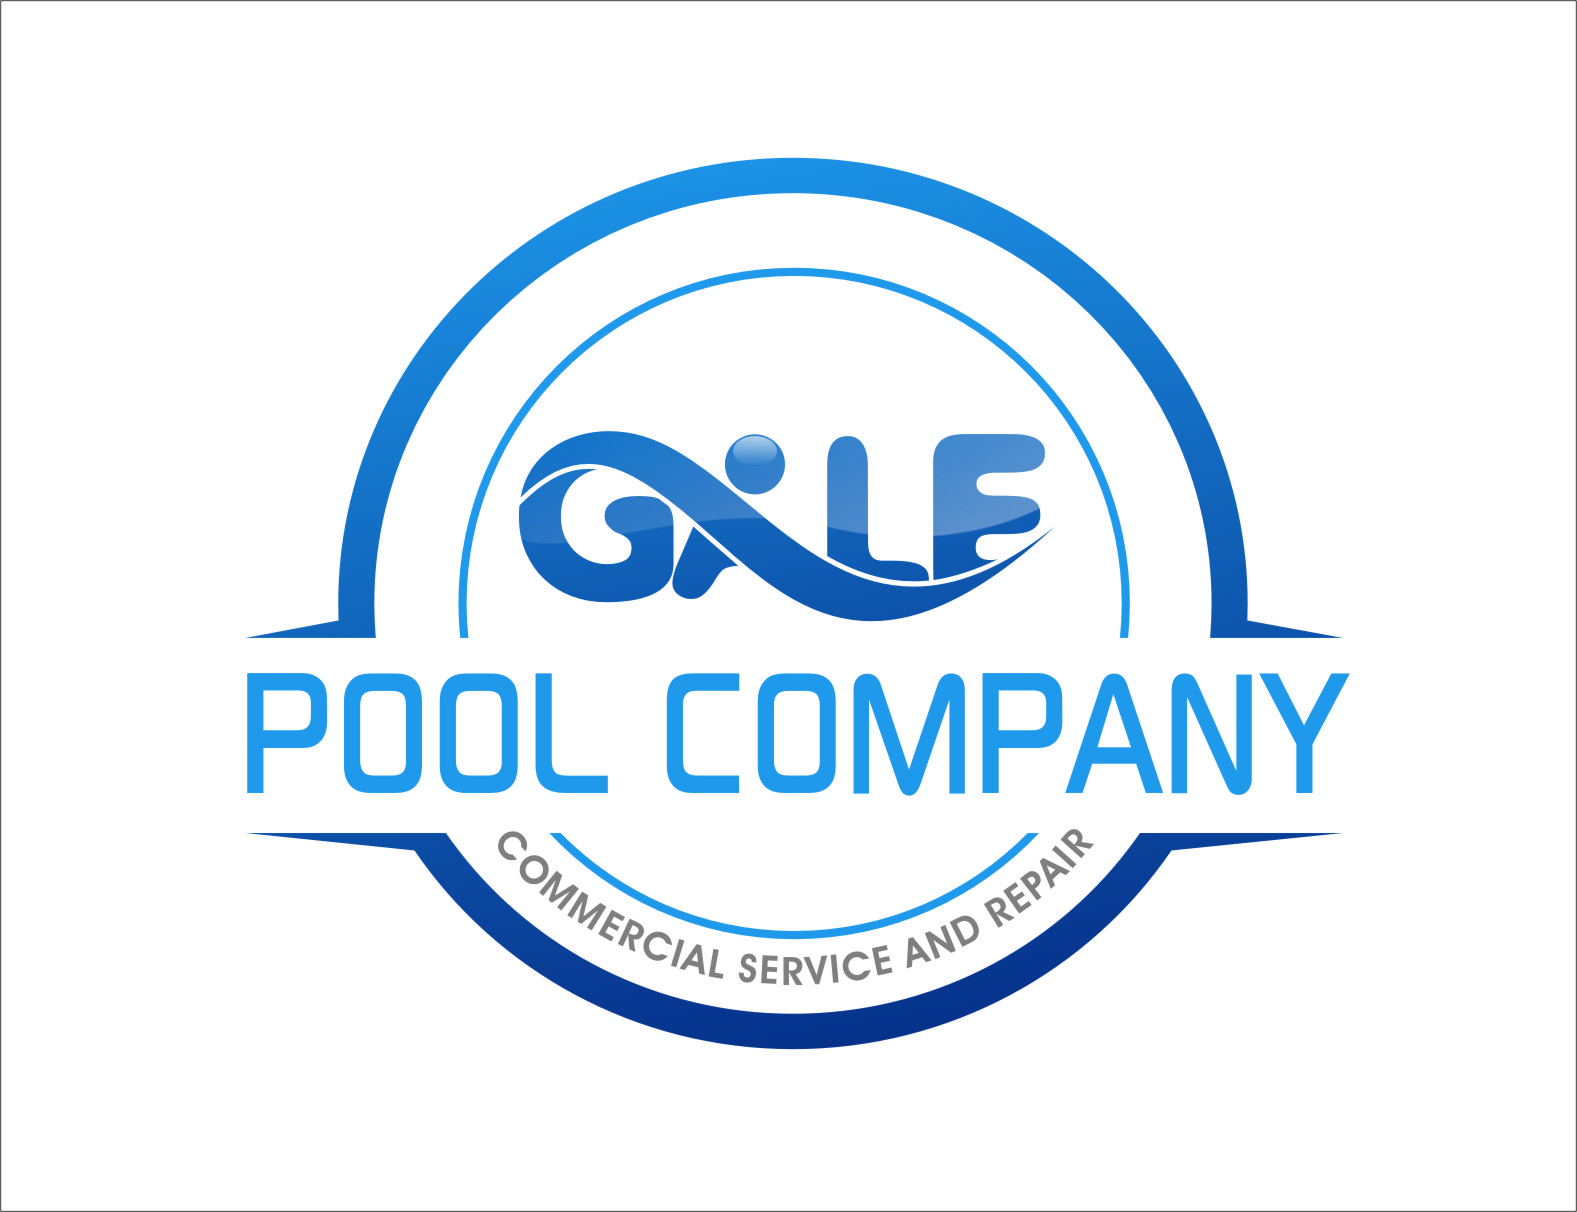 Logo Design by Ngepet_art - Entry No. 59 in the Logo Design Contest Imaginative Logo Design for Gale Pool Company.